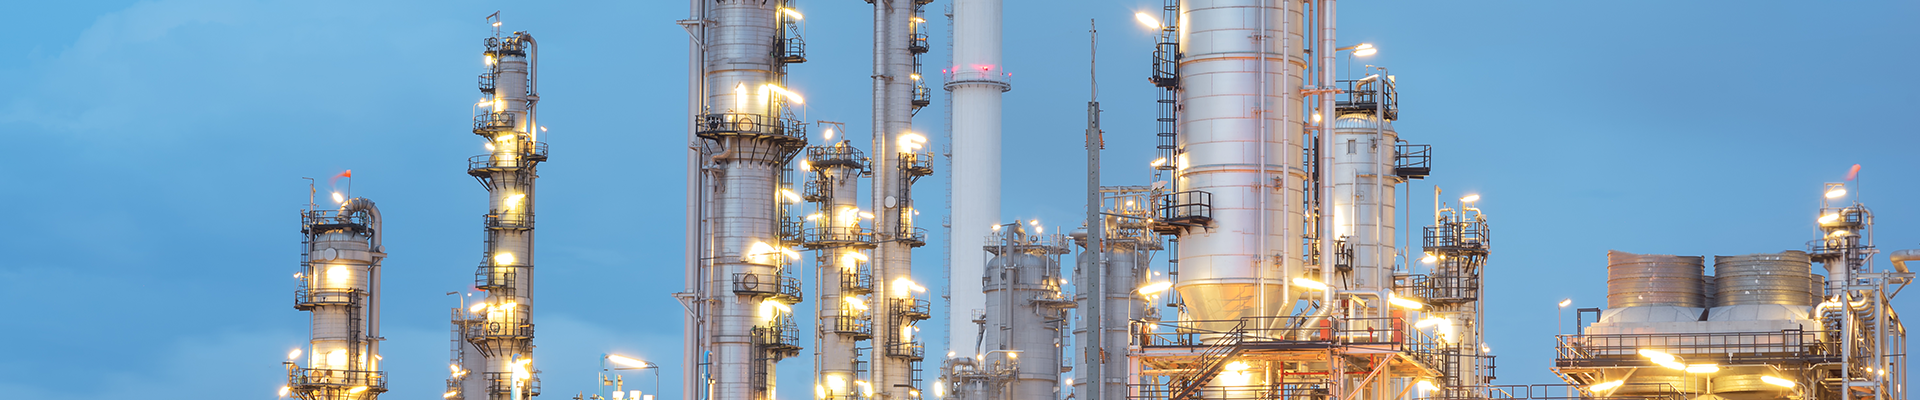 Petrochemical plant in morning light 1920x400